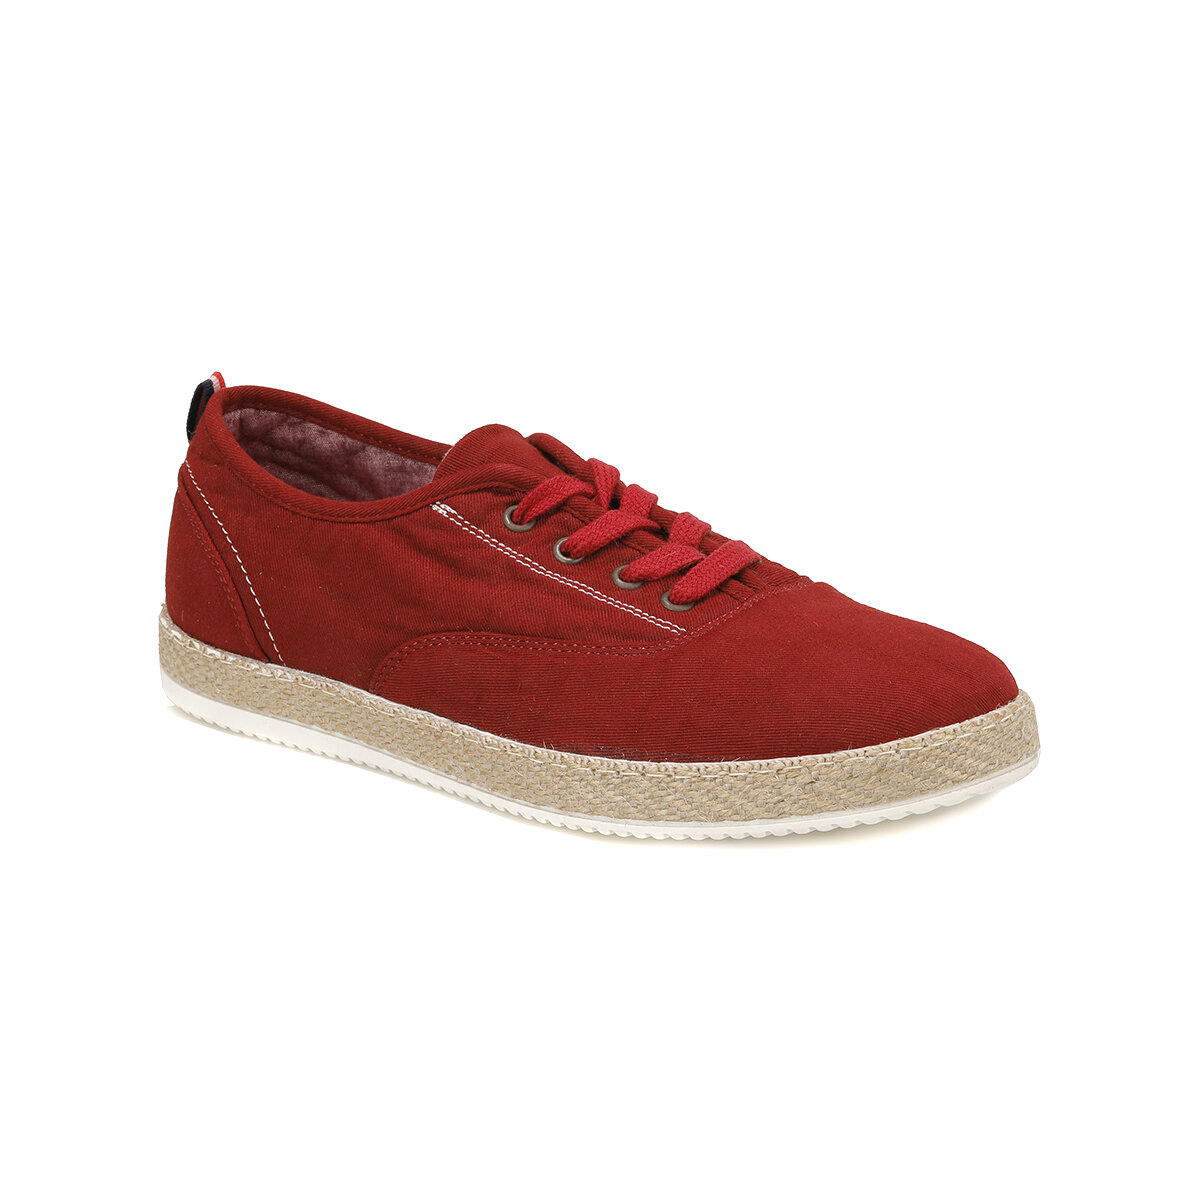 FLO ULB-01 Burgundy Men 'S Shoes Panama Club